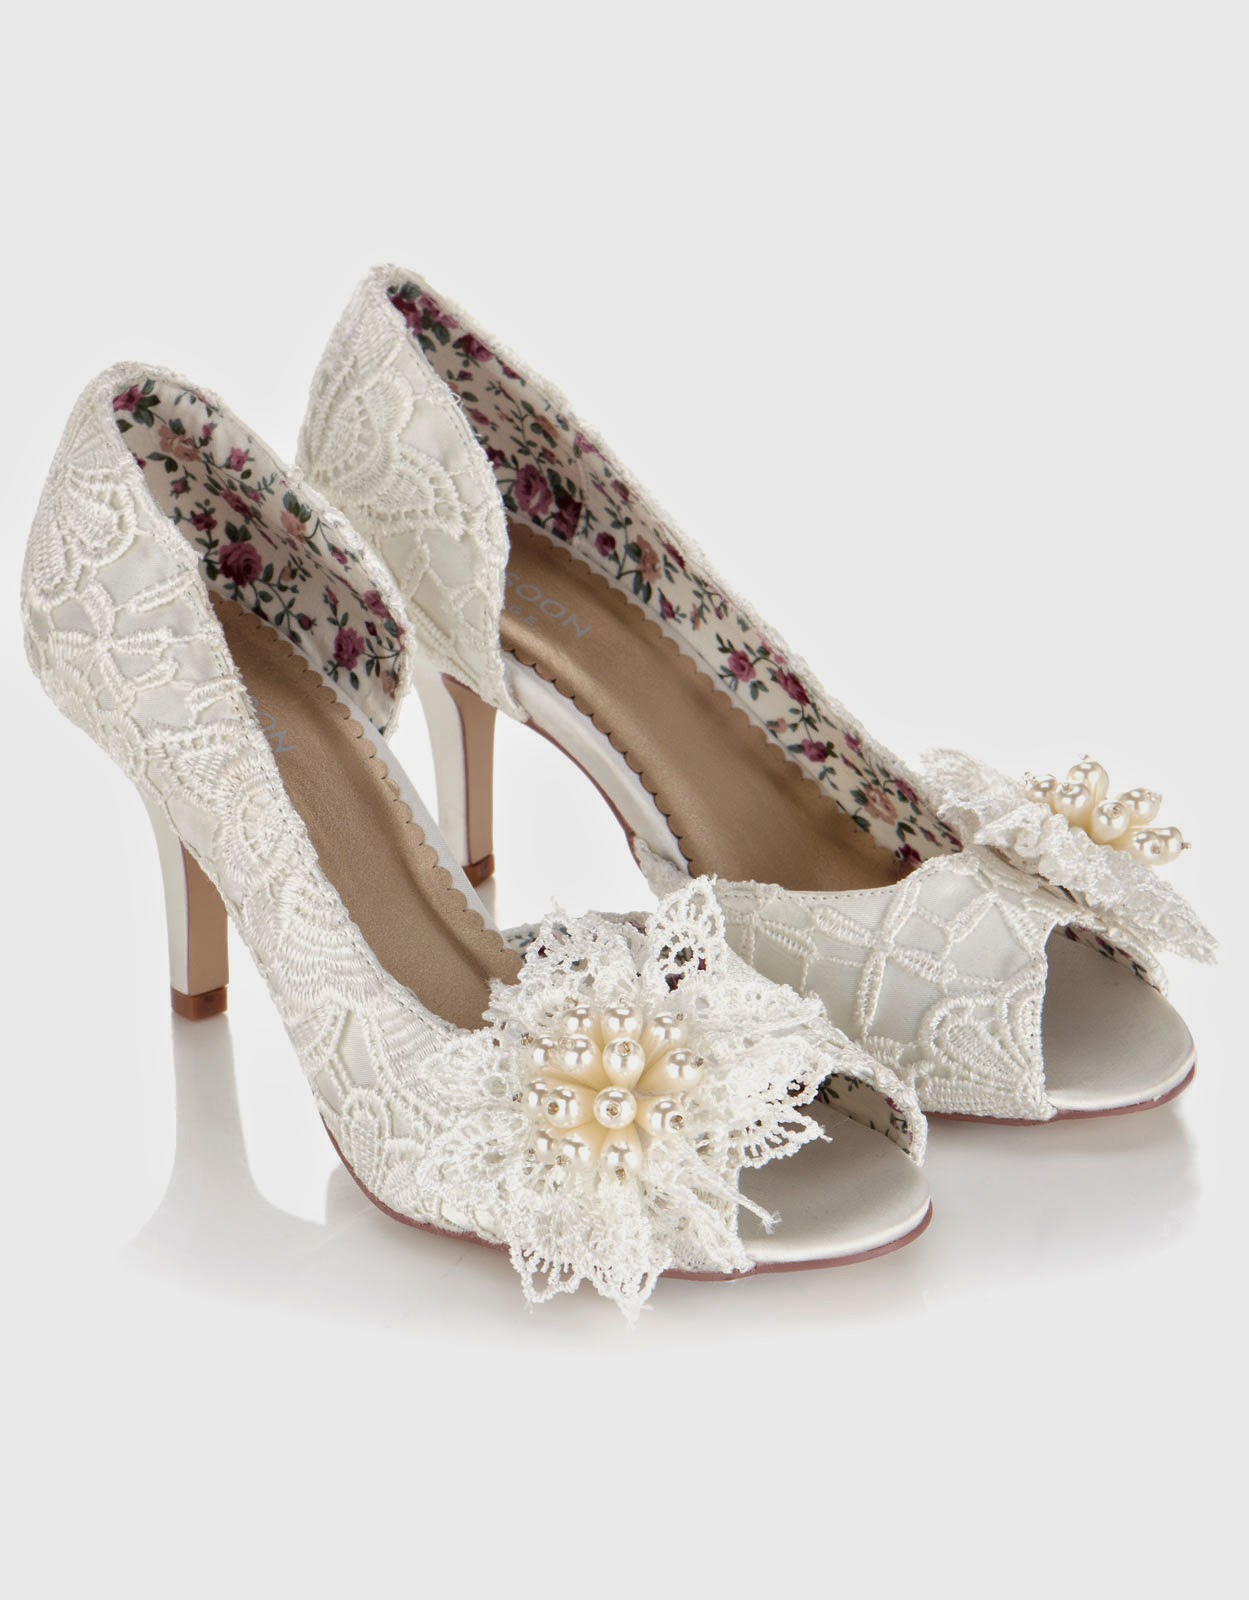 Beautiful and unique handmade vintage ivory lace wedding shoes. With a comfortable low kitten heel and rounded toe, 'Lydia Elliot' is the perfect pair of bridal shoes for Brides seeking both elegance and comfort. Designed in England with Fast Worldwide Shipping.